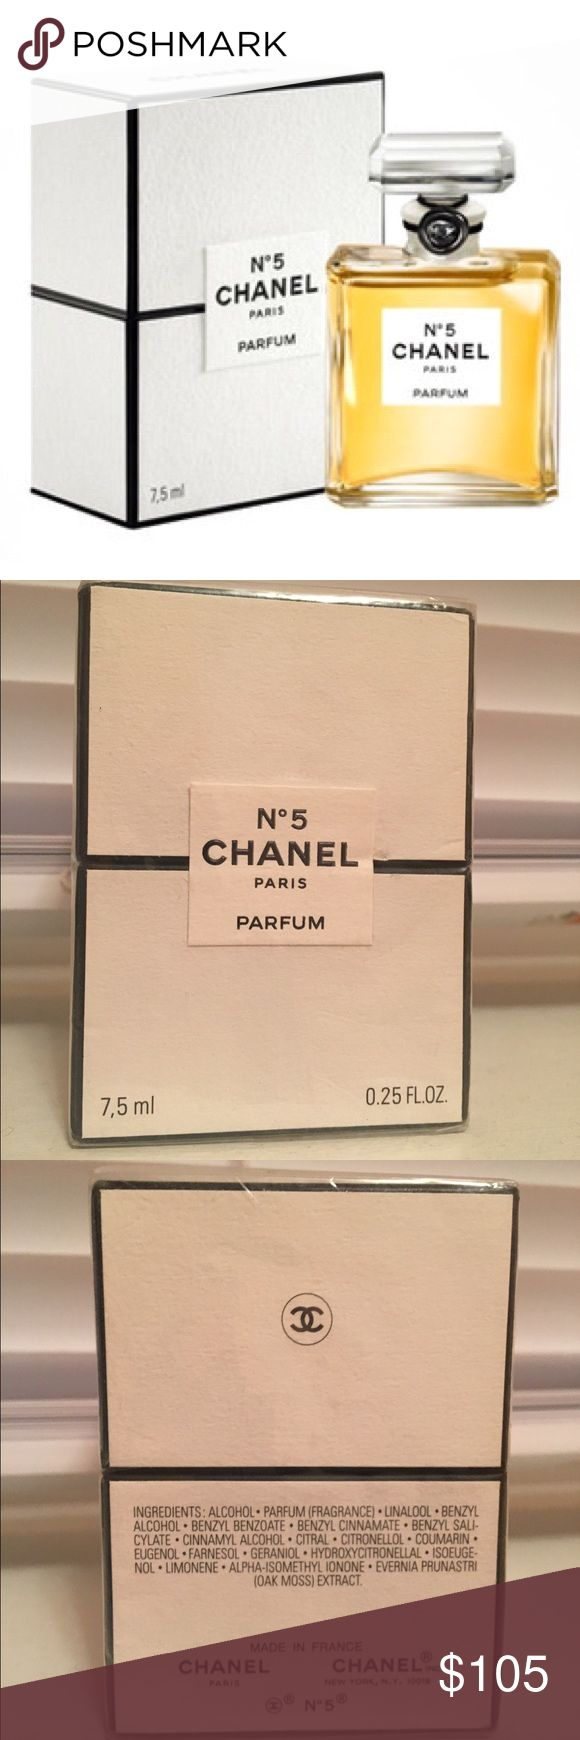 Chanel N5 Parfum **** Brand New**** CHANEL N5 Parfum / 7.5 ml/ 0.25 oz/ 100% Authentic in sealed box! Original price: $125 plus tax! This is a great deal! CHANEL Other